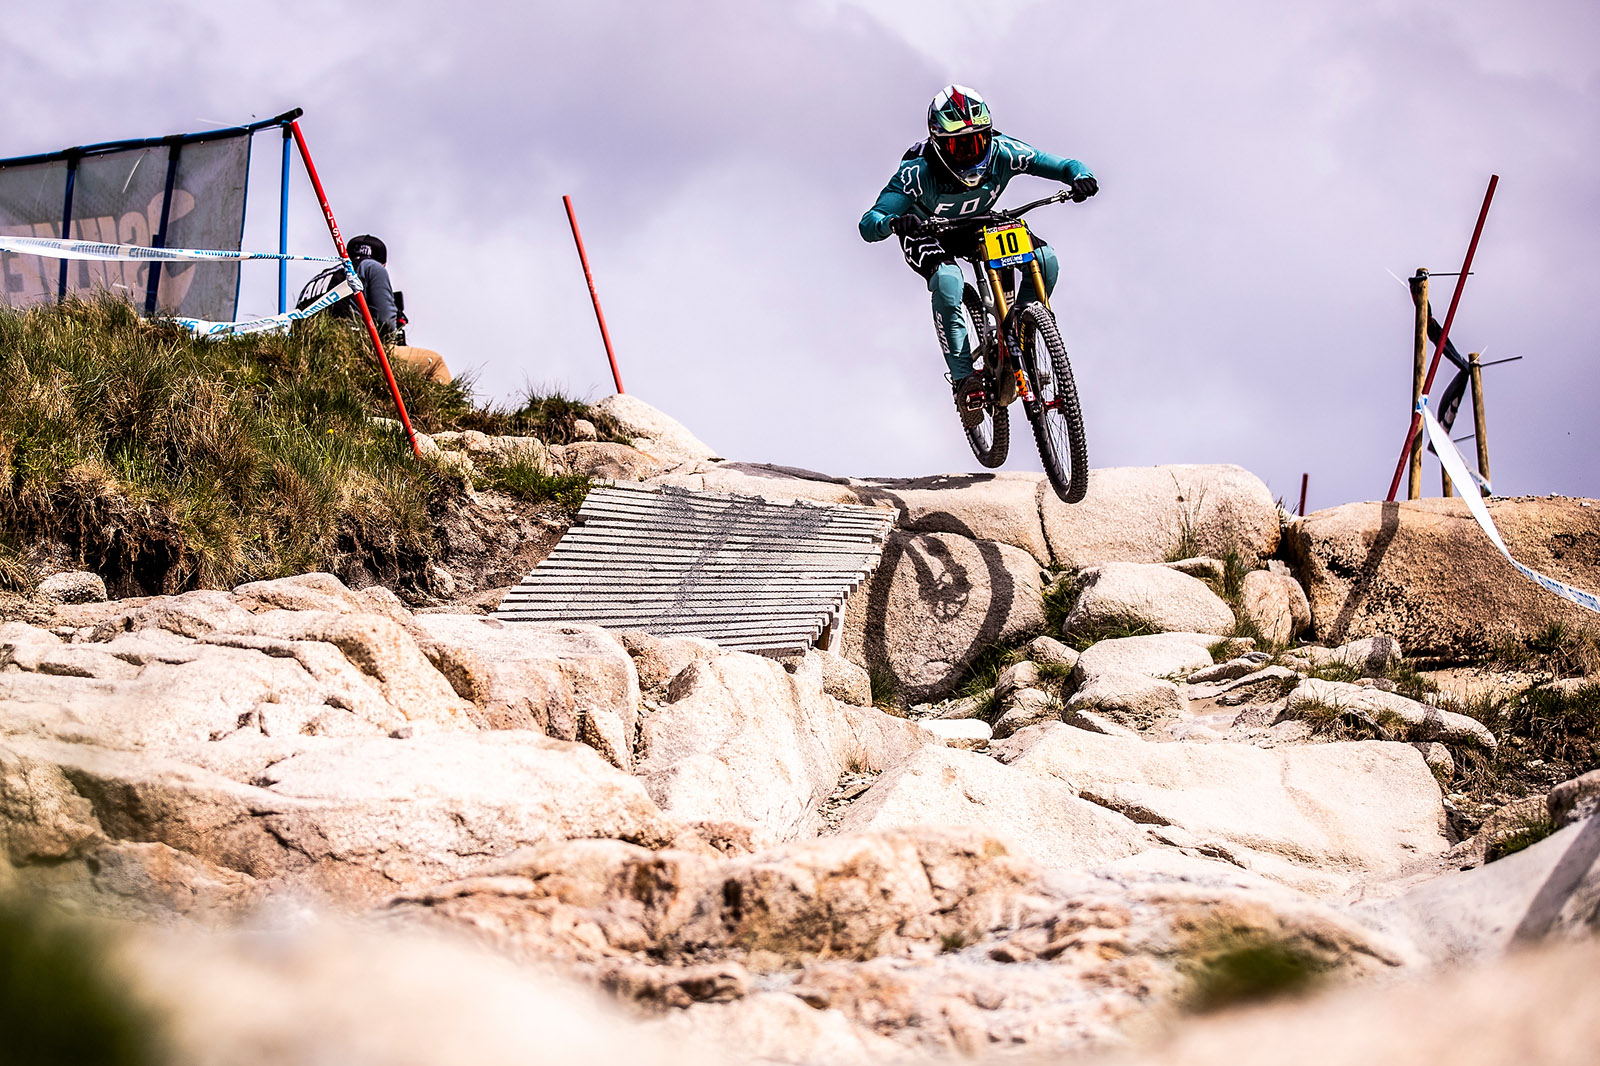 Santa Cruz Bicycles - The Syndicate's Loris Vergier Taking the Shortcut at the Fort William World Cup